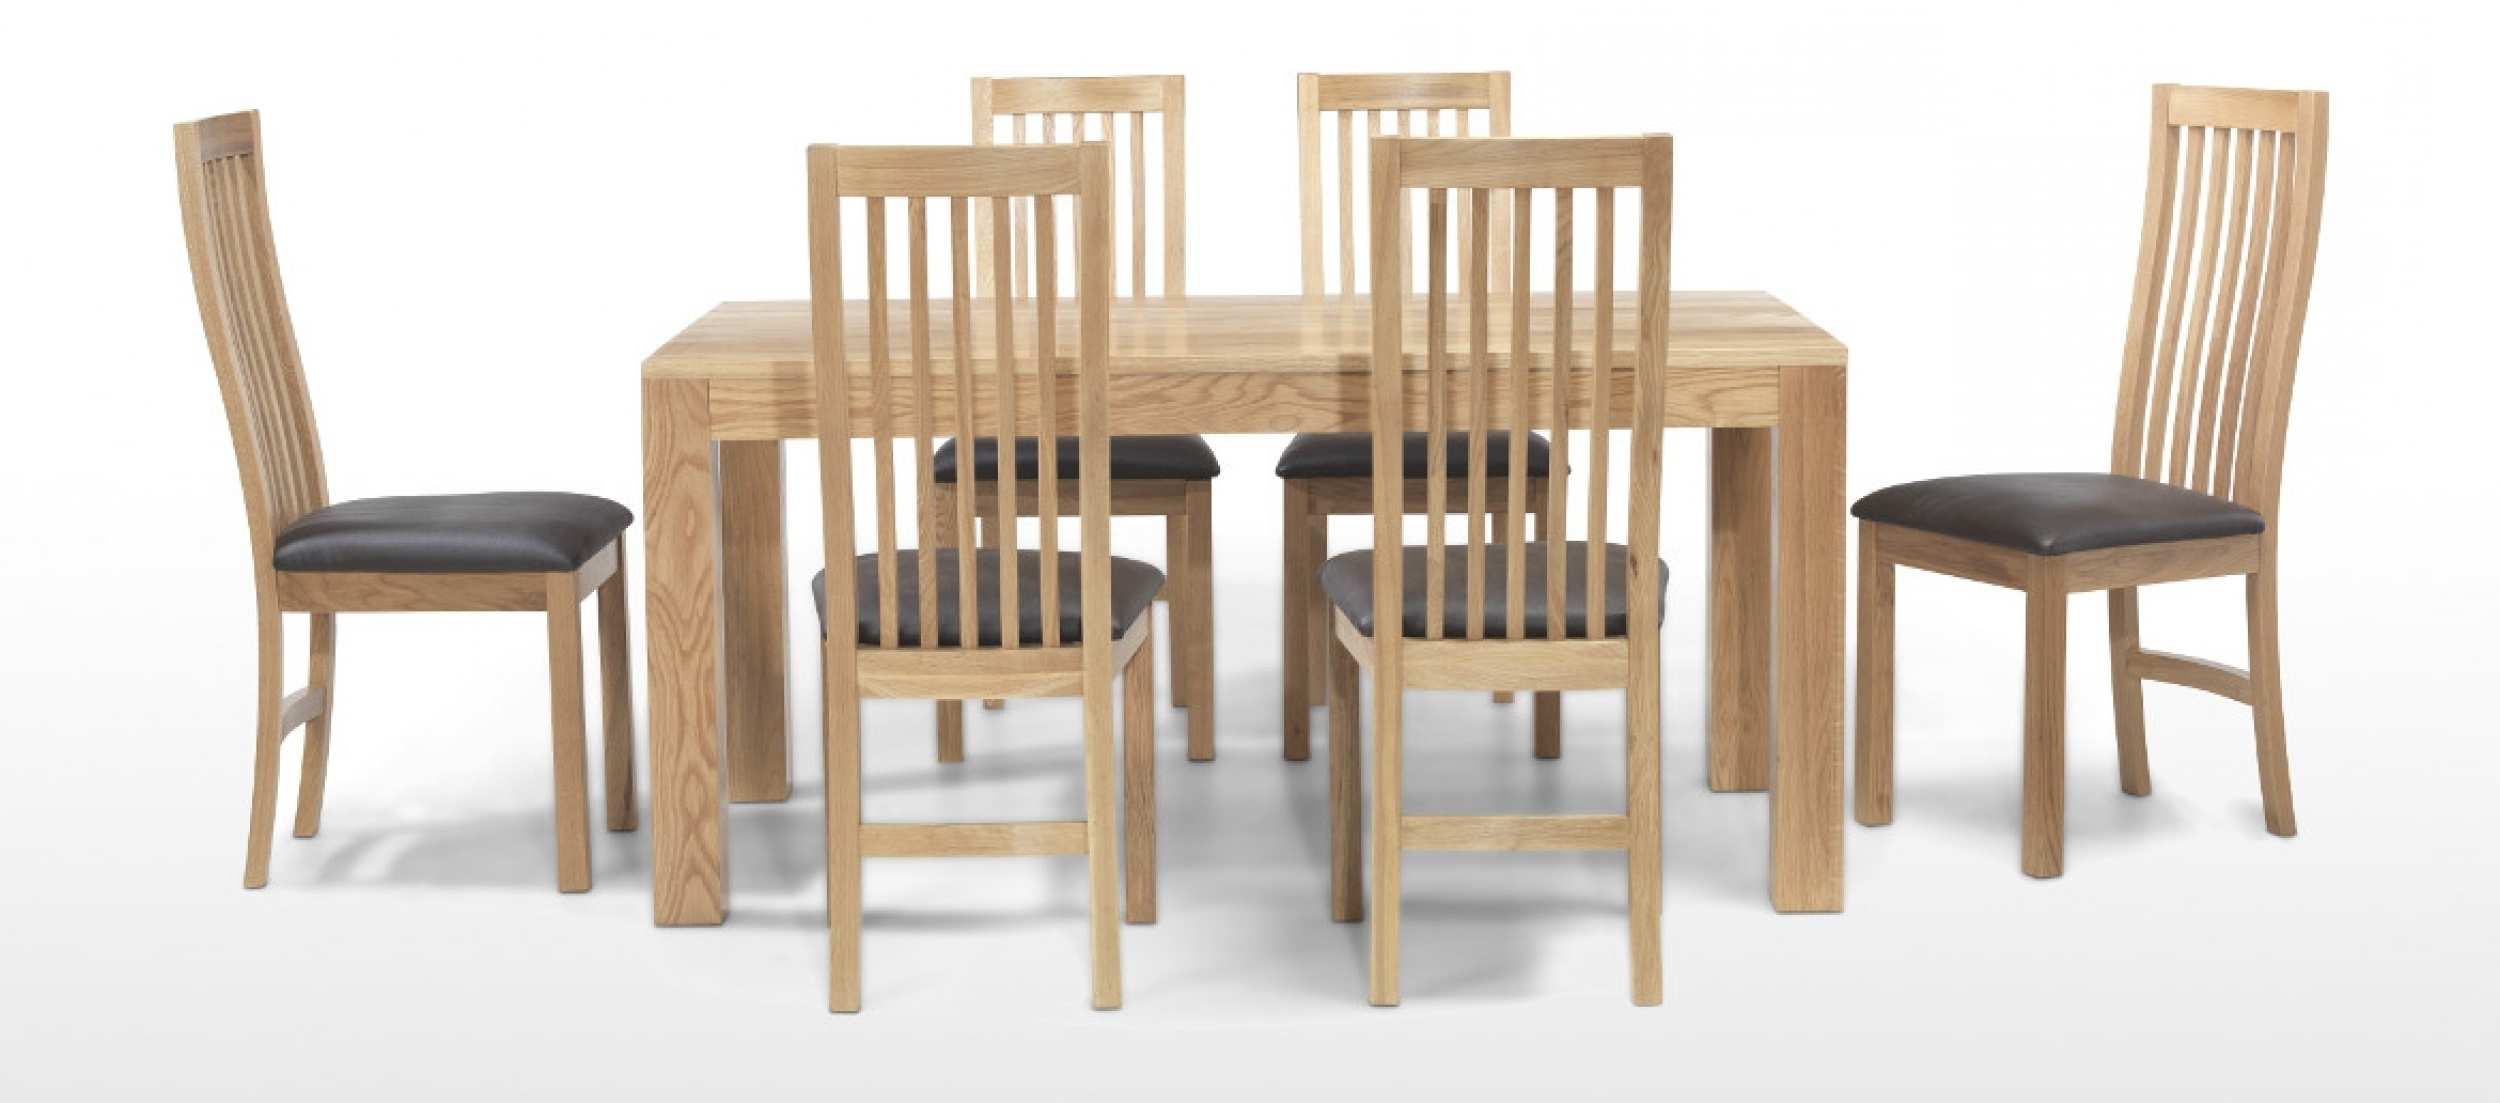 Quercus Living Pertaining To Most Up To Date Oak Extending Dining Tables And Chairs (View 20 of 25)